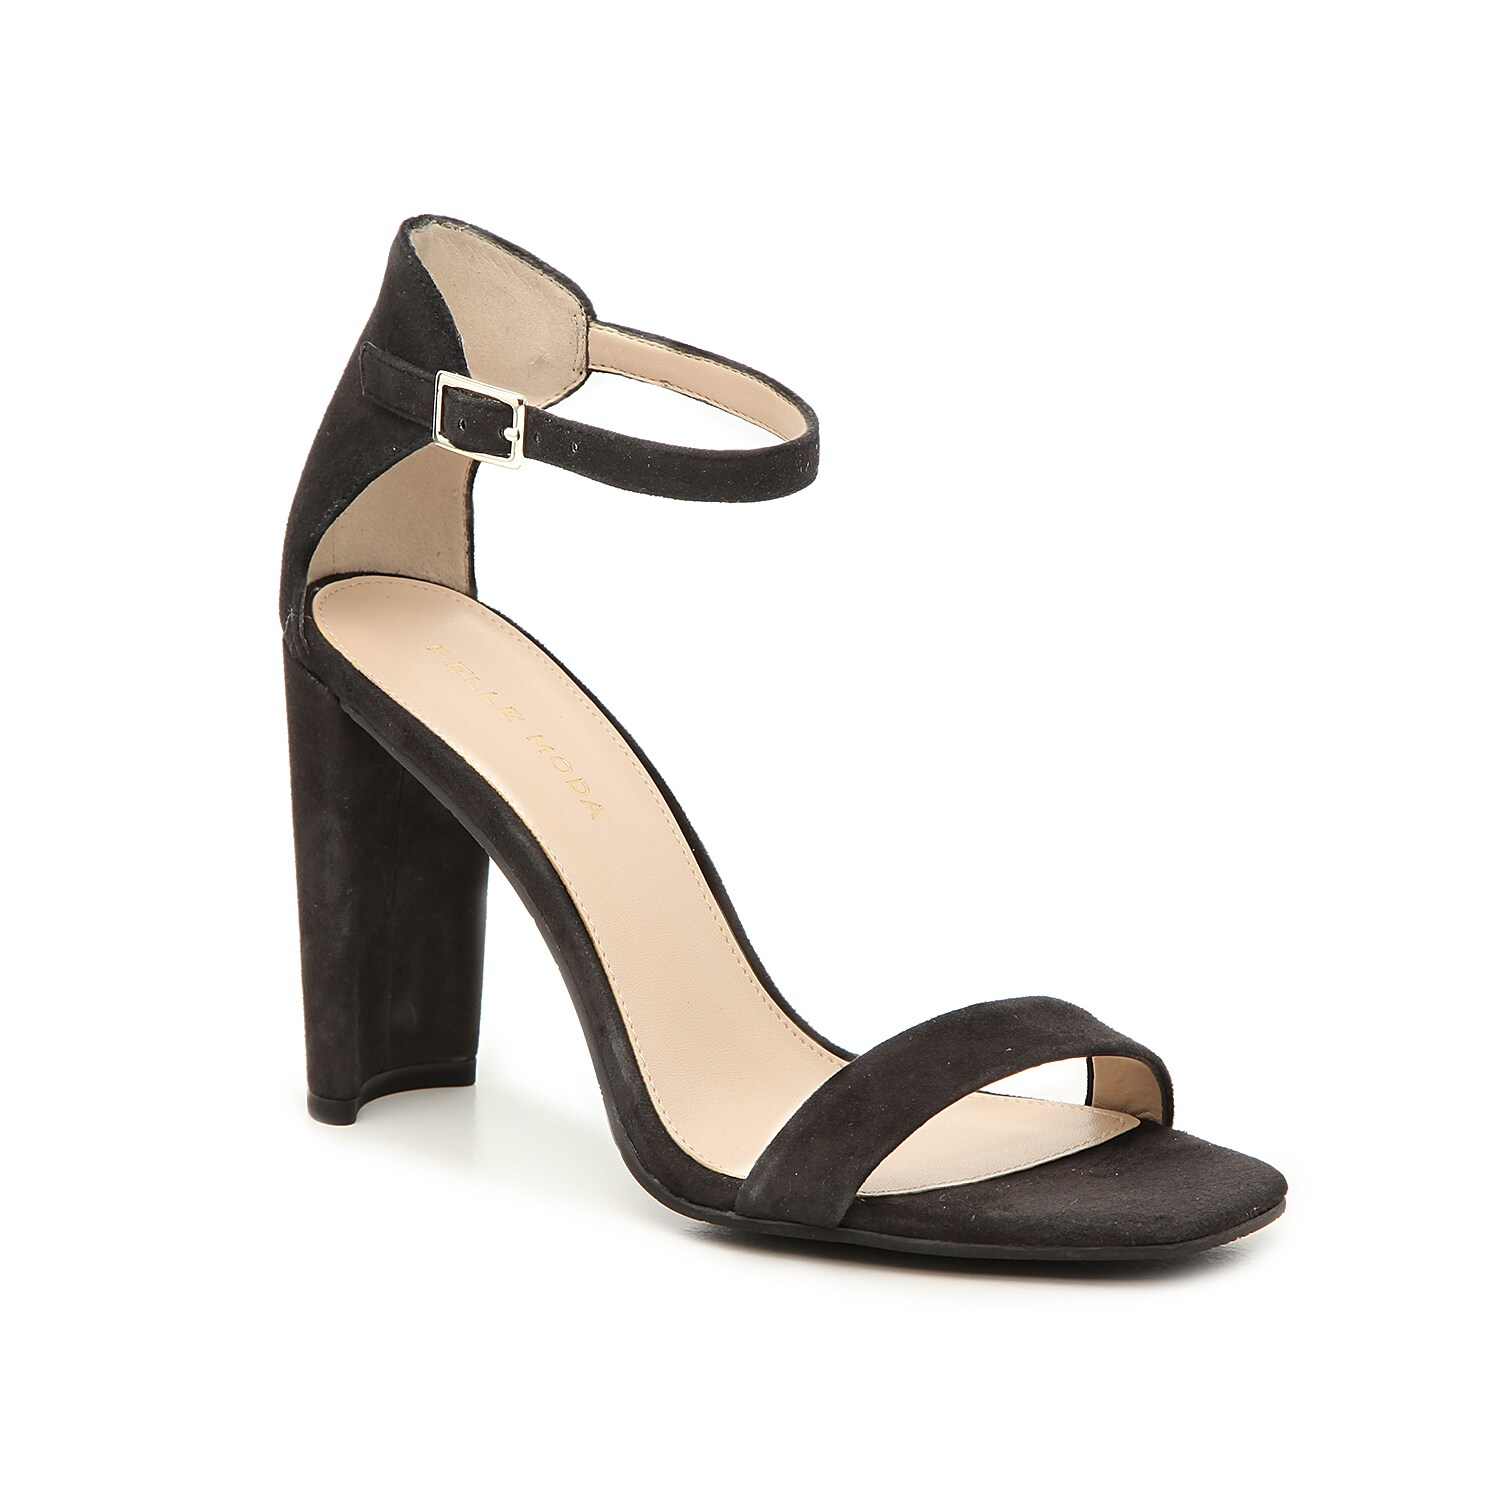 The Lucille sandal from Pelle Moda takes the two-piece trend to the next level of sophistication. A flat block heel and open square toe is finished with a soft suede material for versatile appeal.